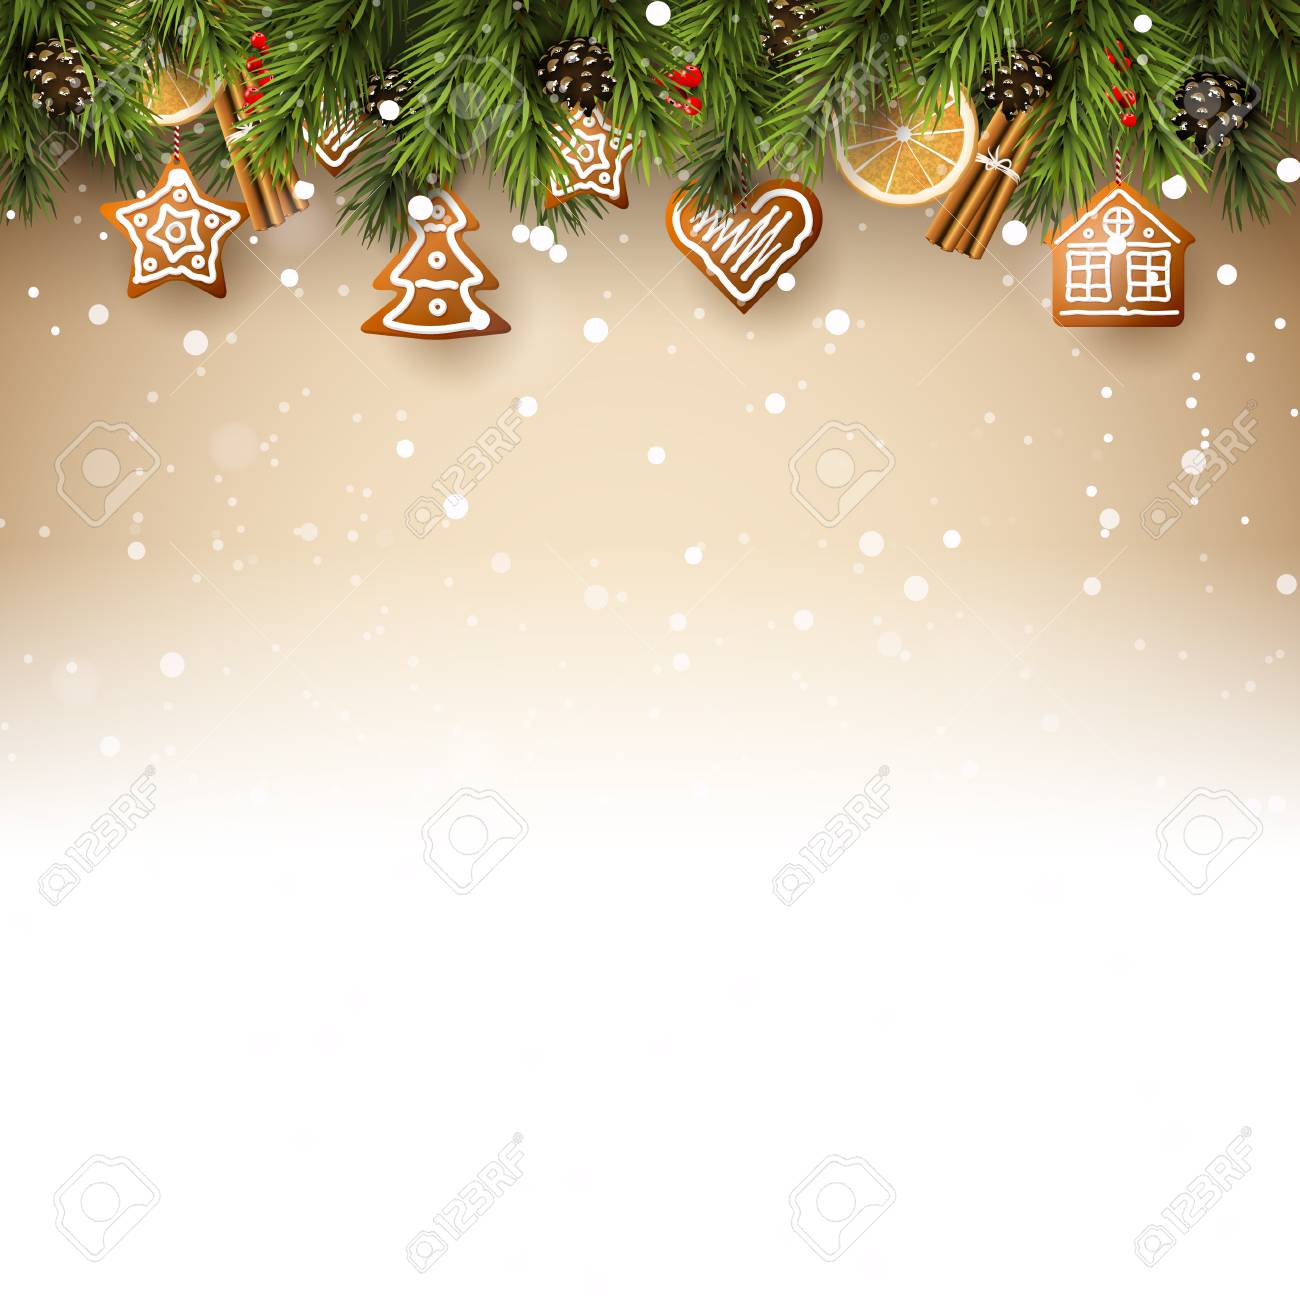 Christmas background with fir branches, traditional decorations and gingerbreads - 90818508